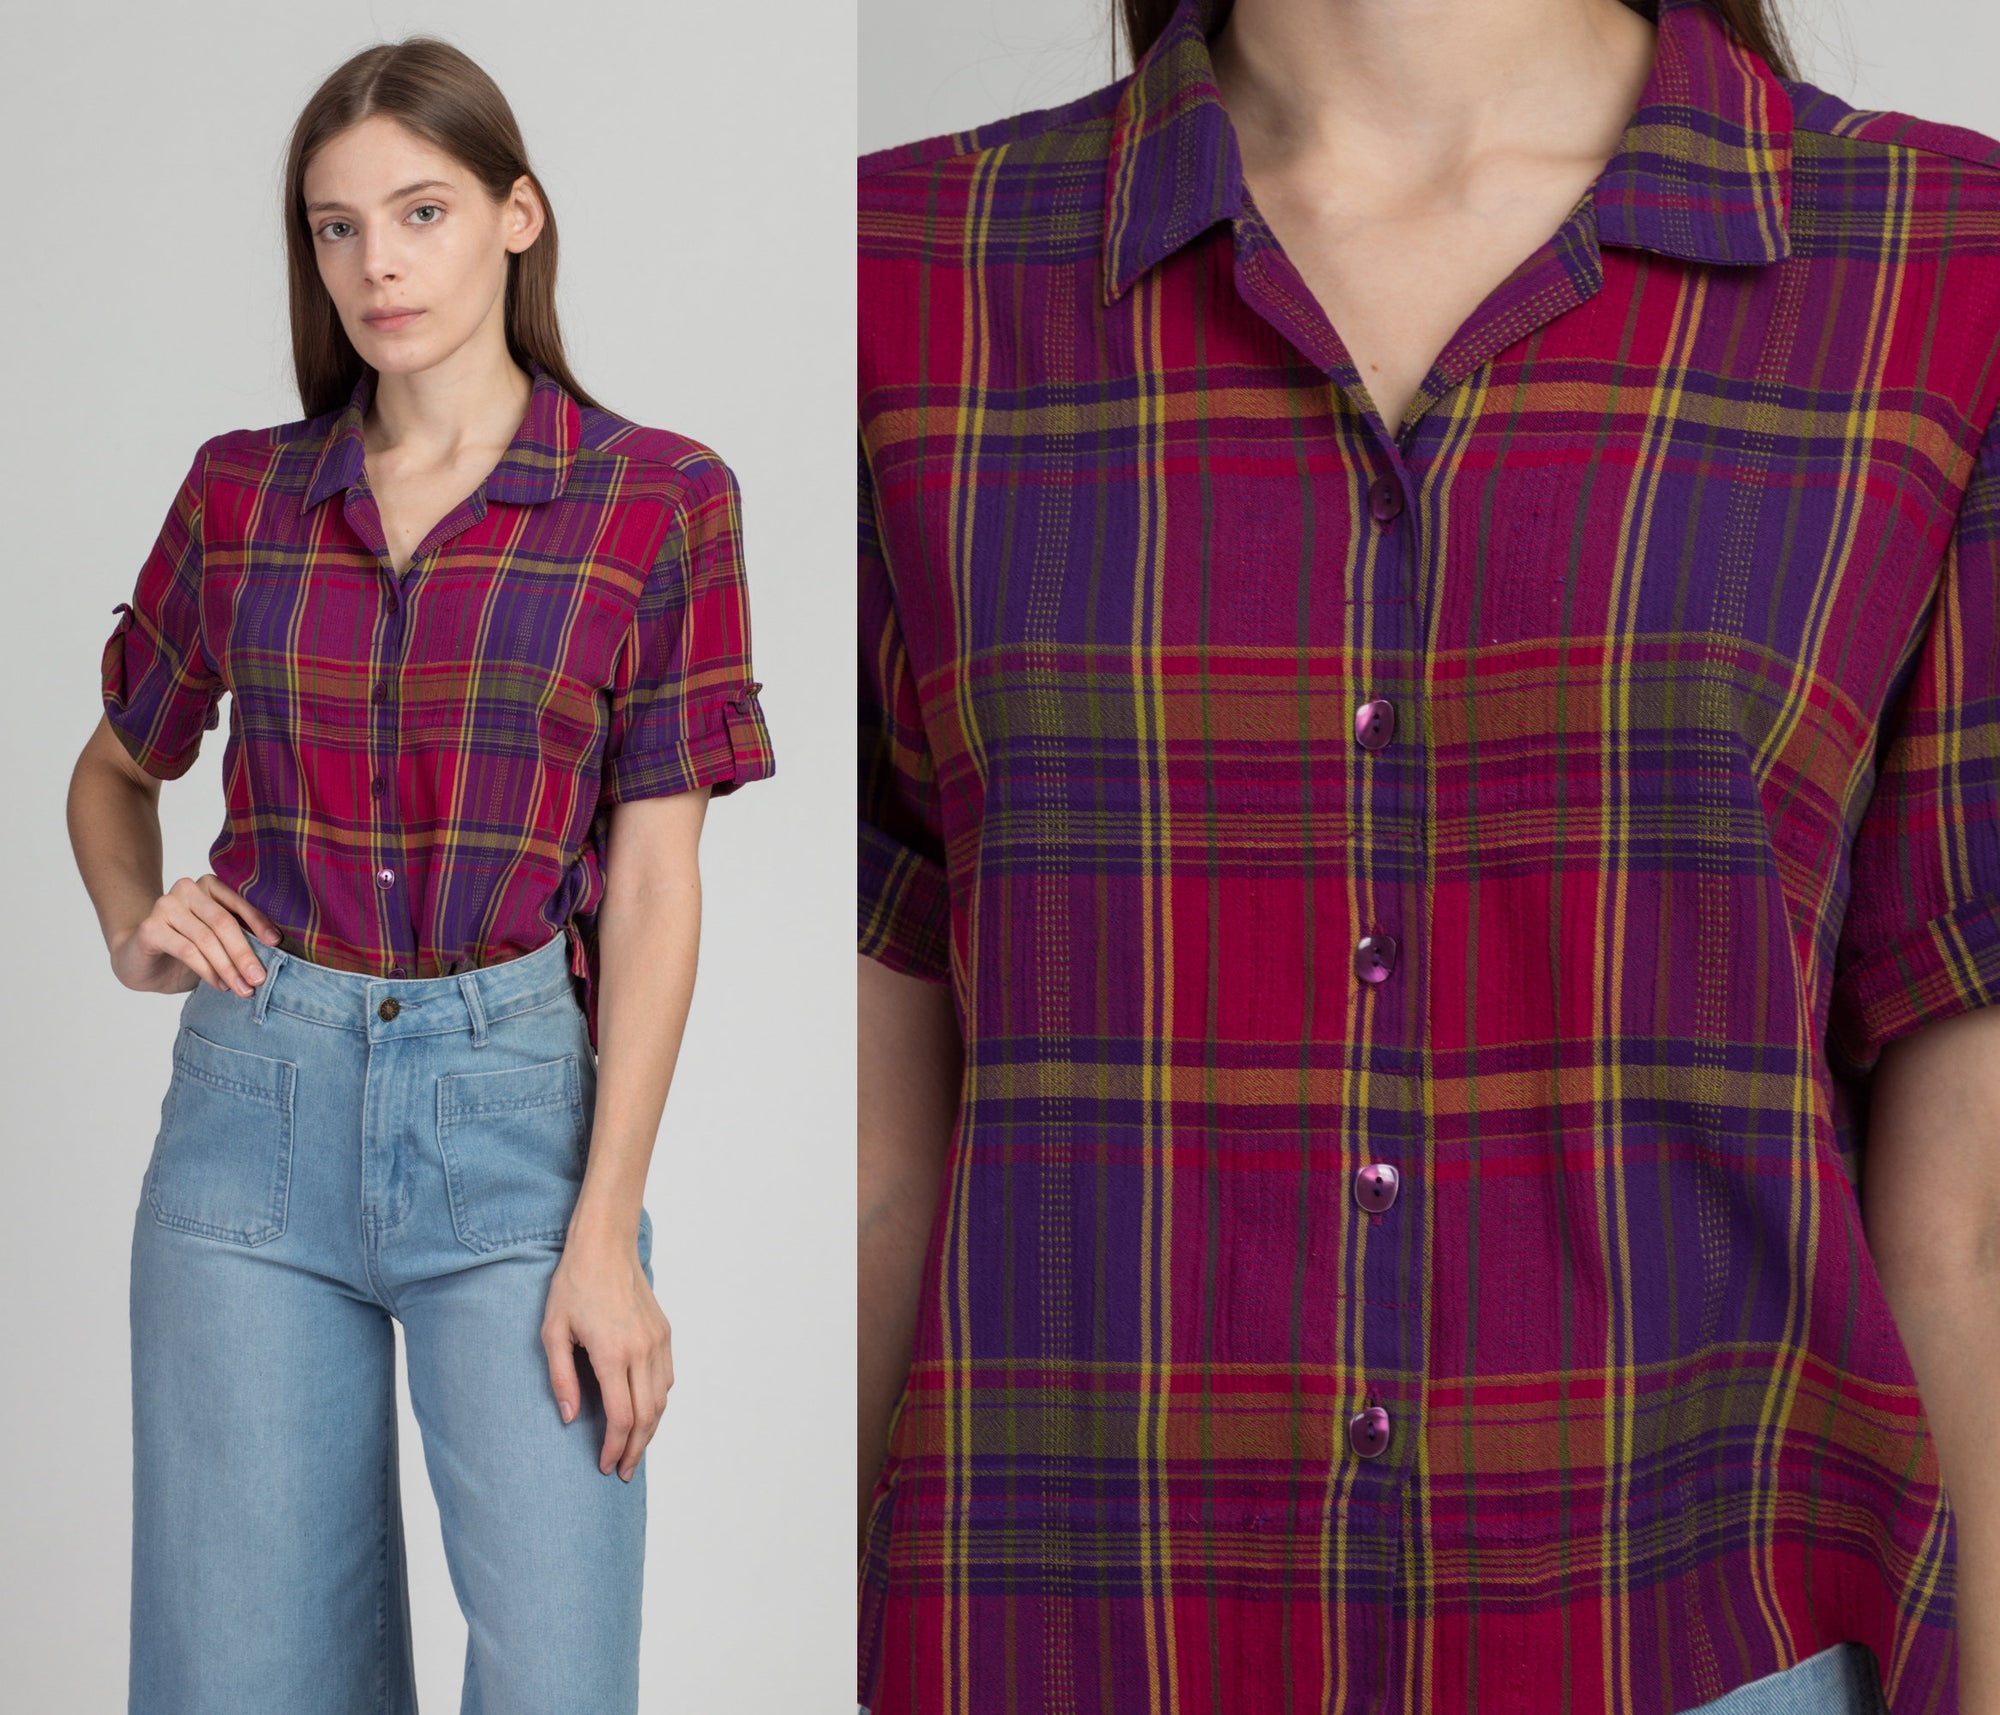 90s Purple Plaid Cropped Blouse - Small | Vintage Button Up Boxy Collared Short Sleeve Shirt